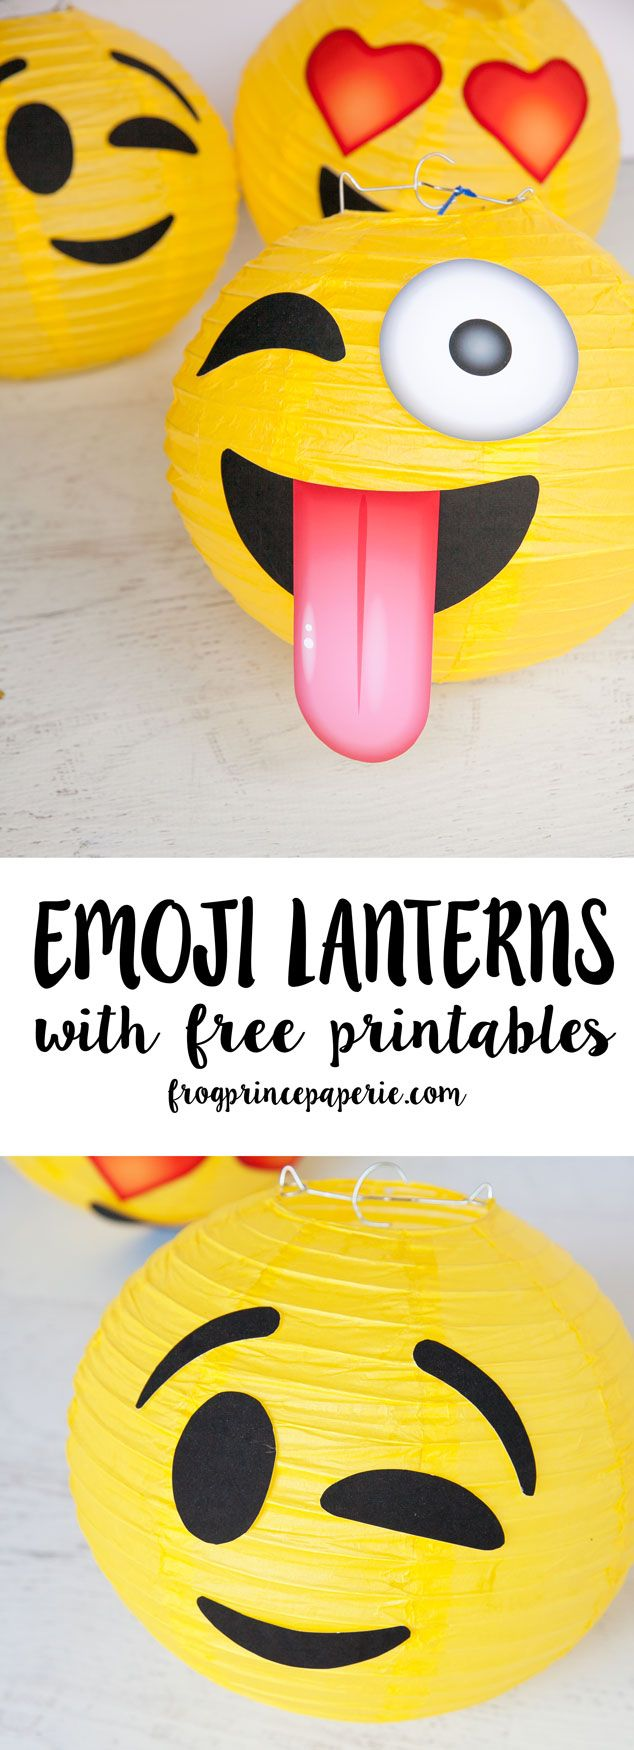 Make cute & easy decor for your Emoji party with these 3D Emojis! Click over for the full tutorial and download the printables to create a room full of Emoji lanterns that will make everyone LOL!